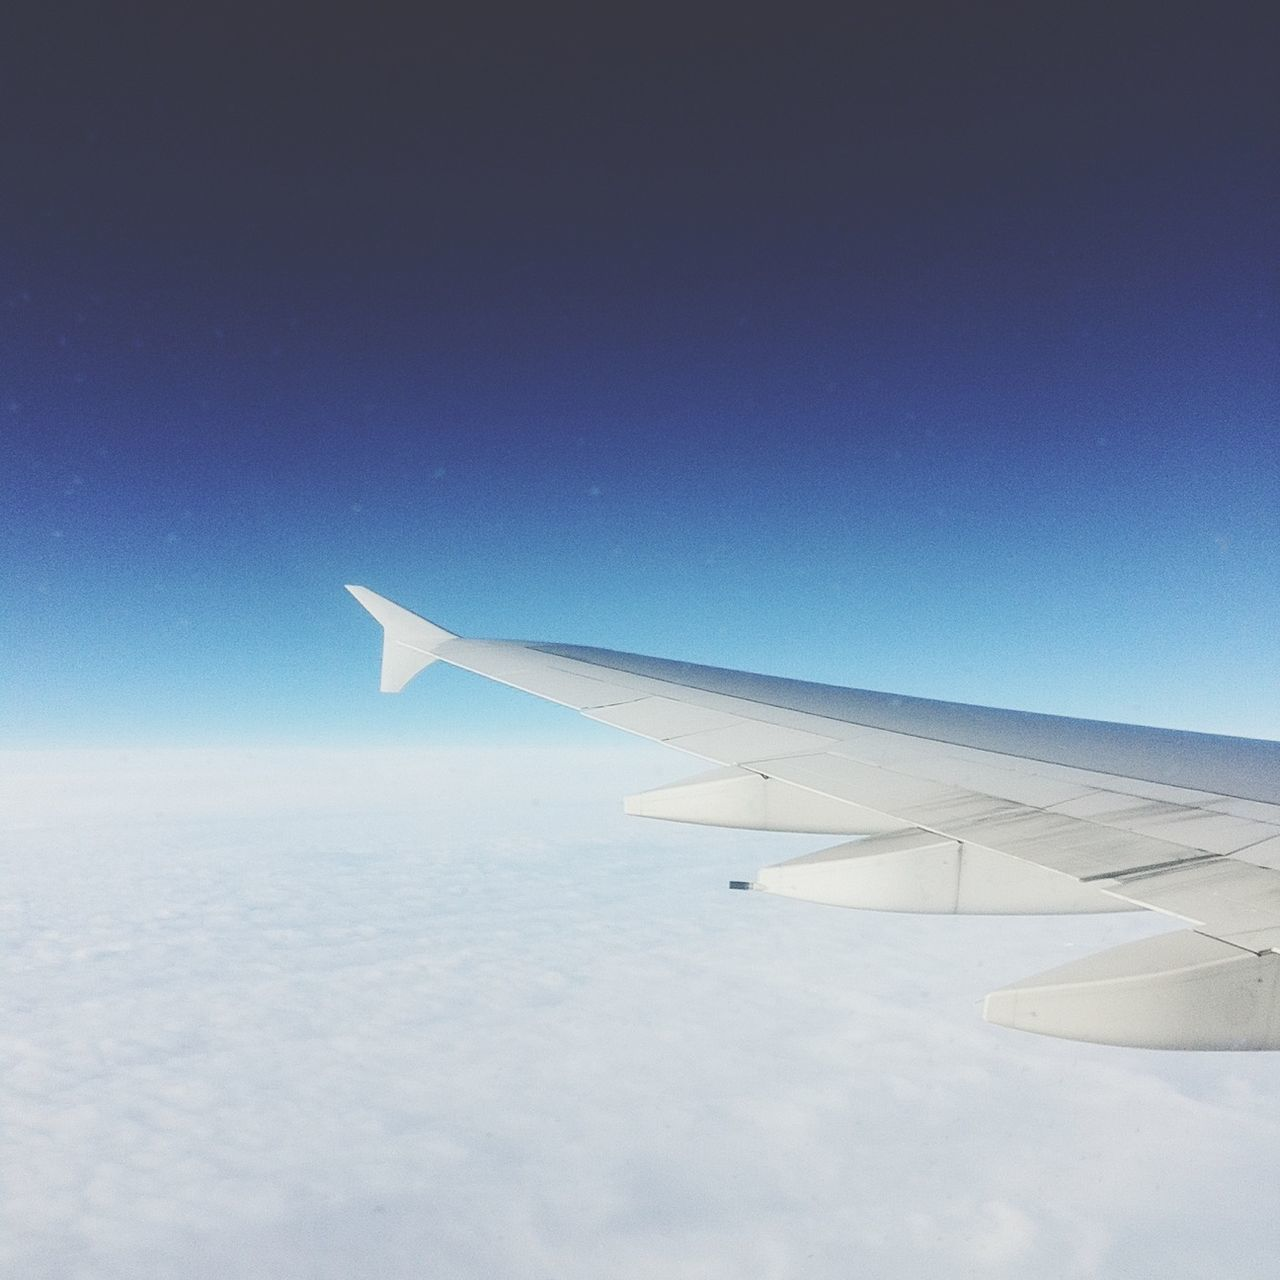 From A Plane Window